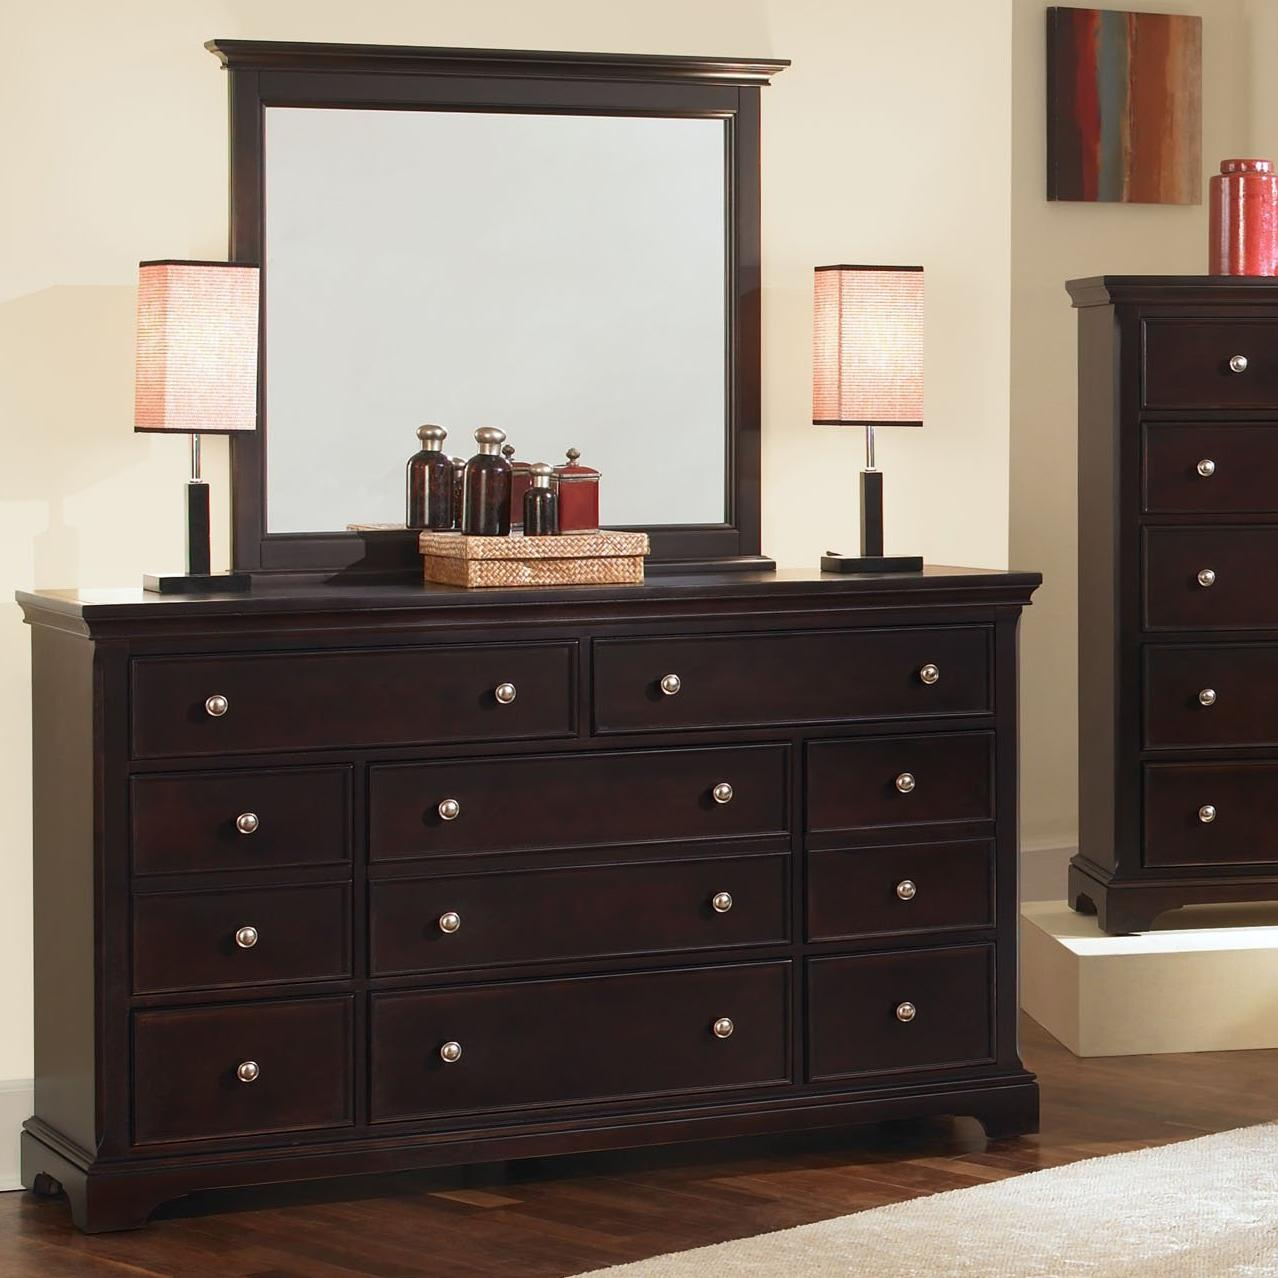 Vaughan Bassett Forsyth 8 Drawer Dresser and Mirror - Item Number: BB76-003+446